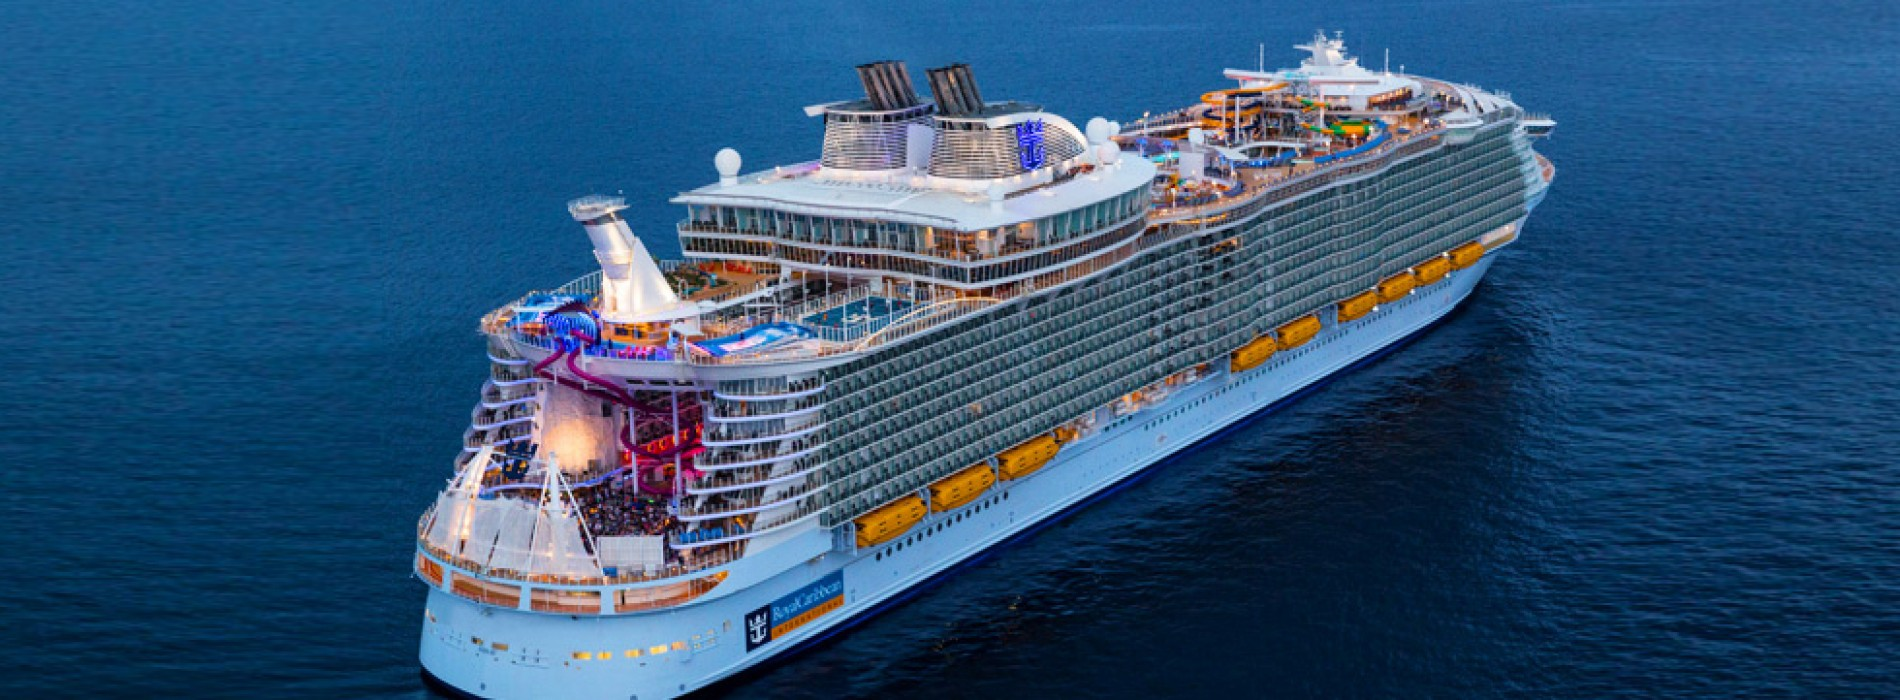 The World's largest cruise ship, 'Symphony of the Seas'